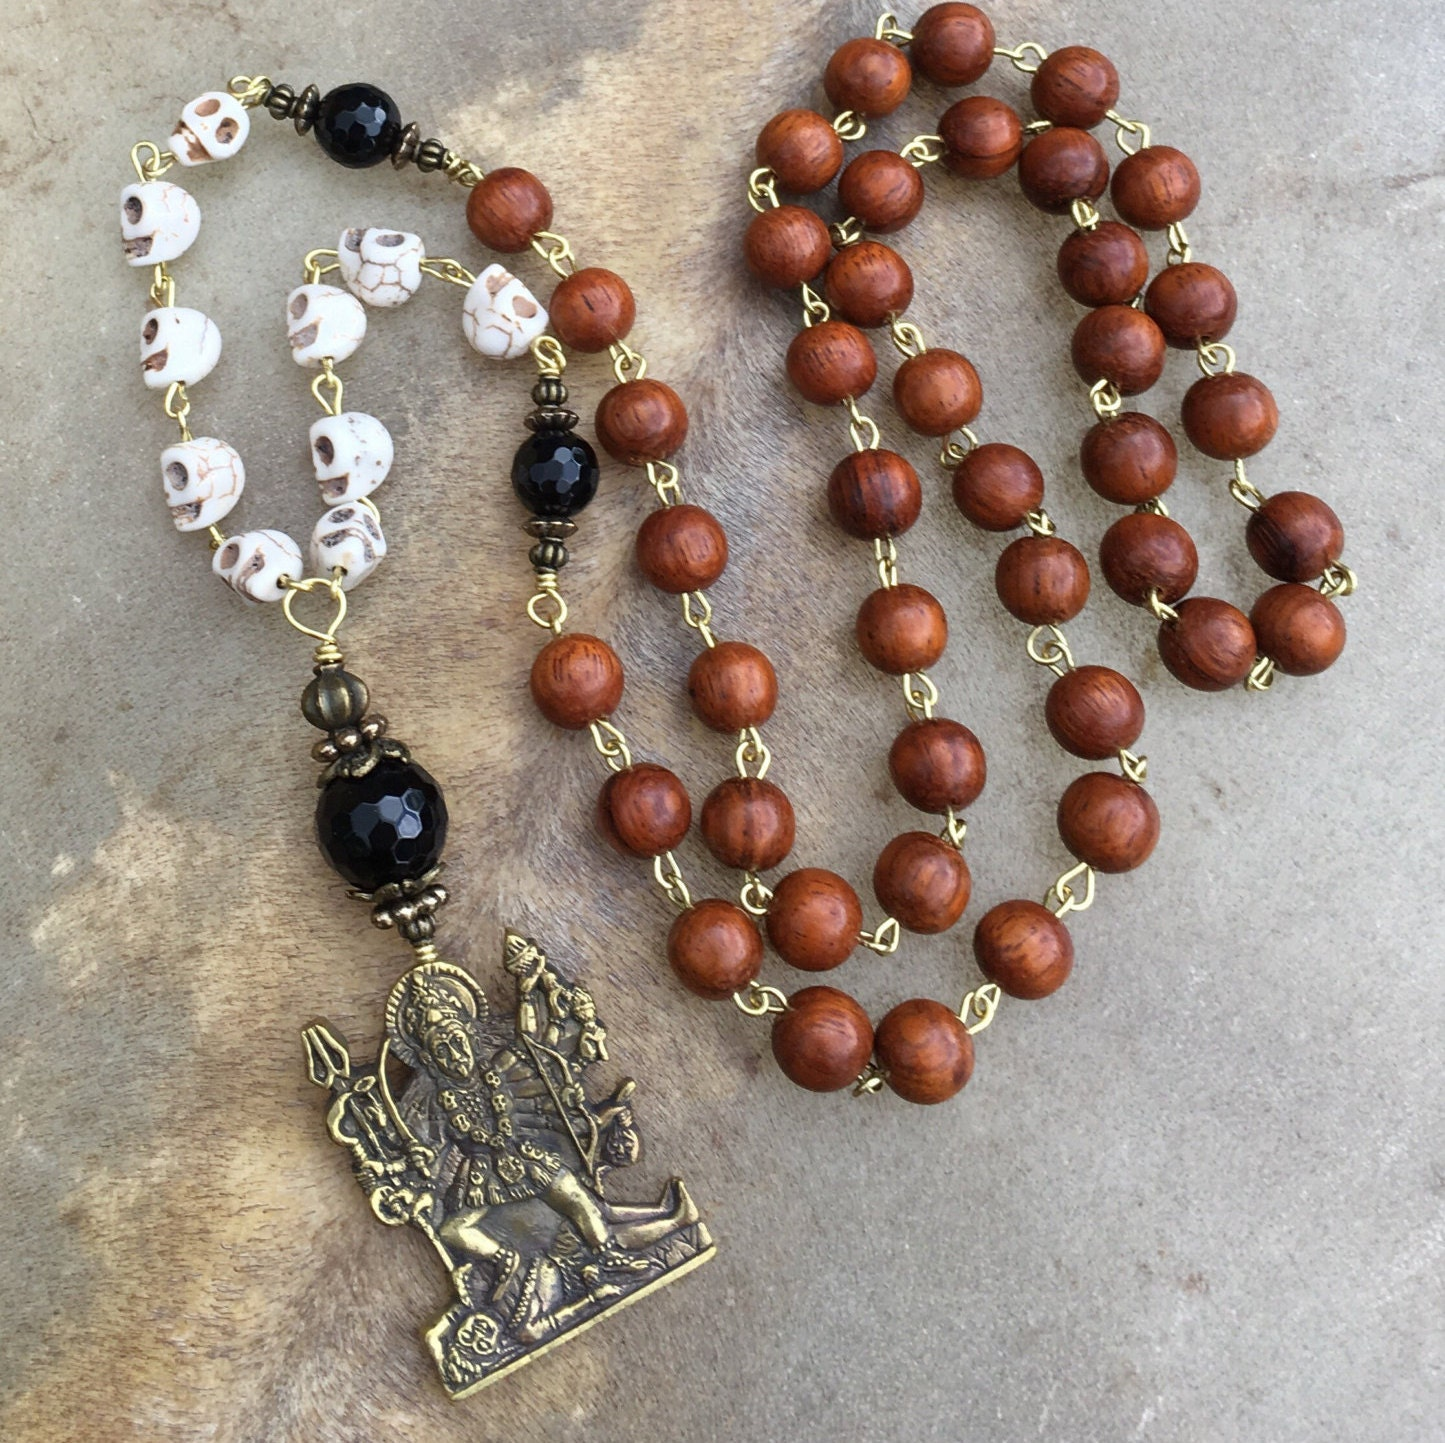 necklace prayer mala shop beads passion buddhist carnelian